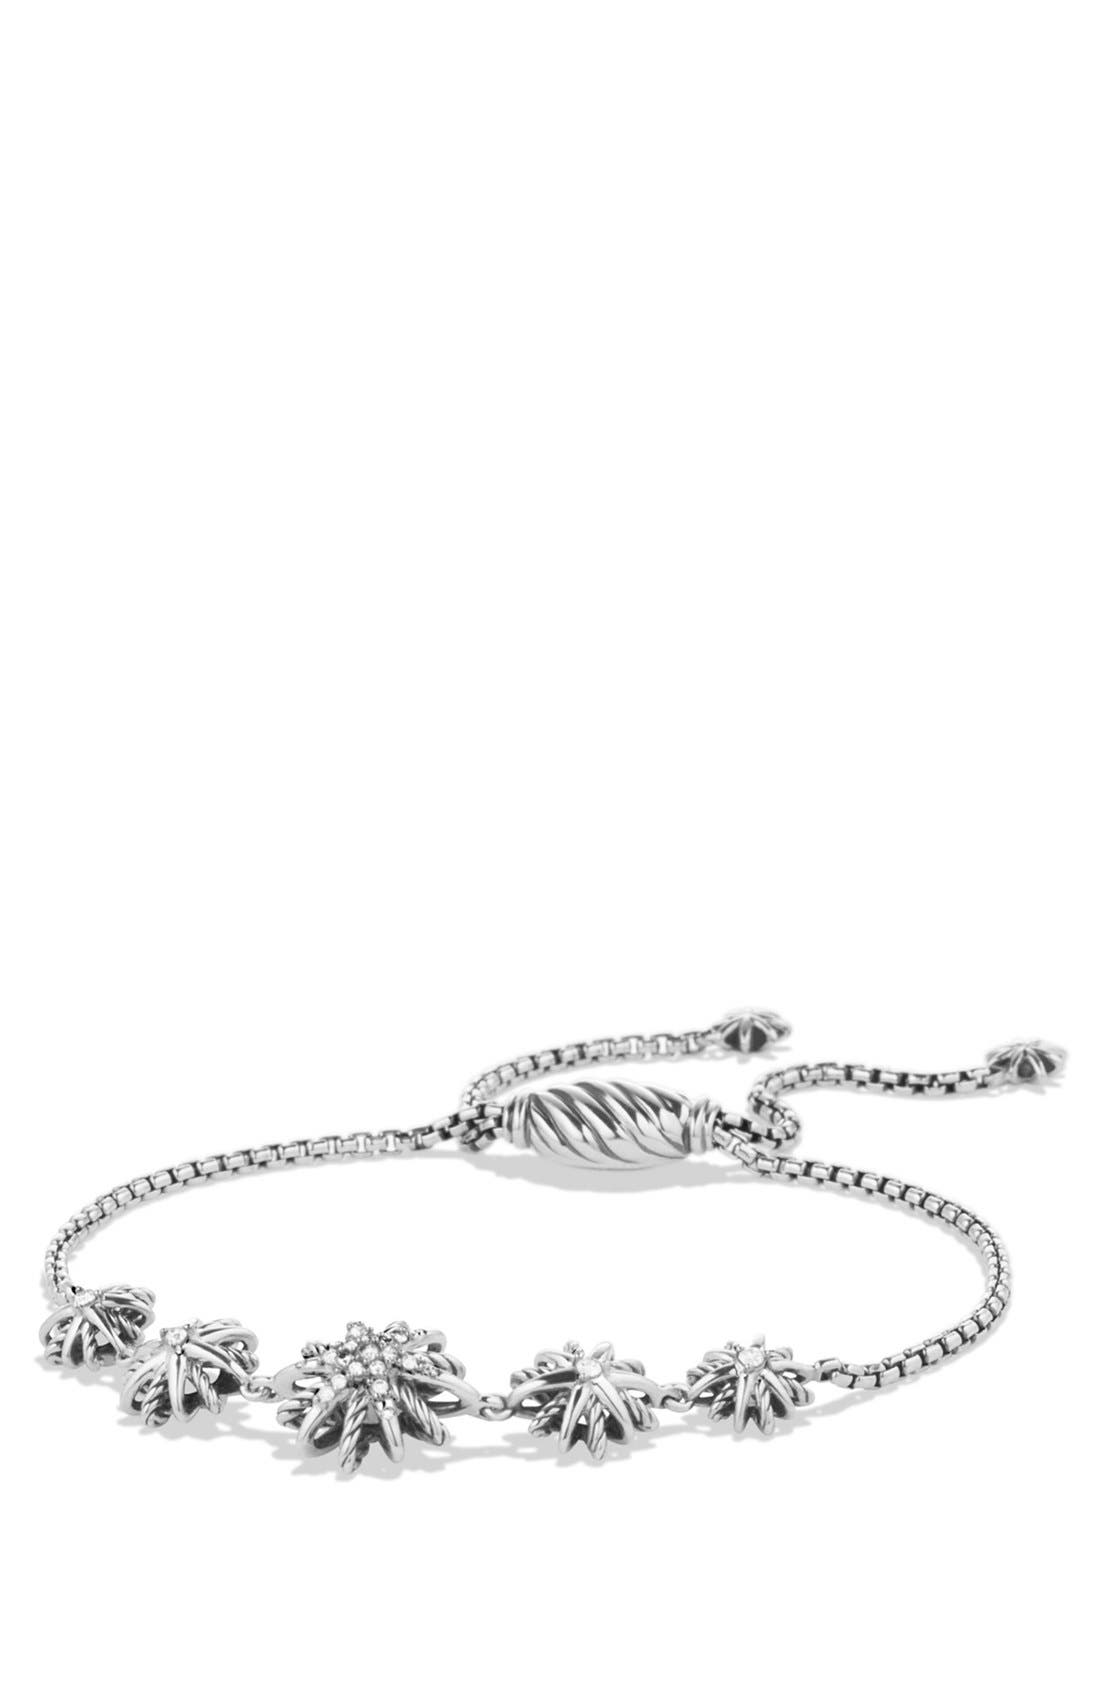 DAVID YURMAN Starburst Five-Station Bracelet with Diamonds